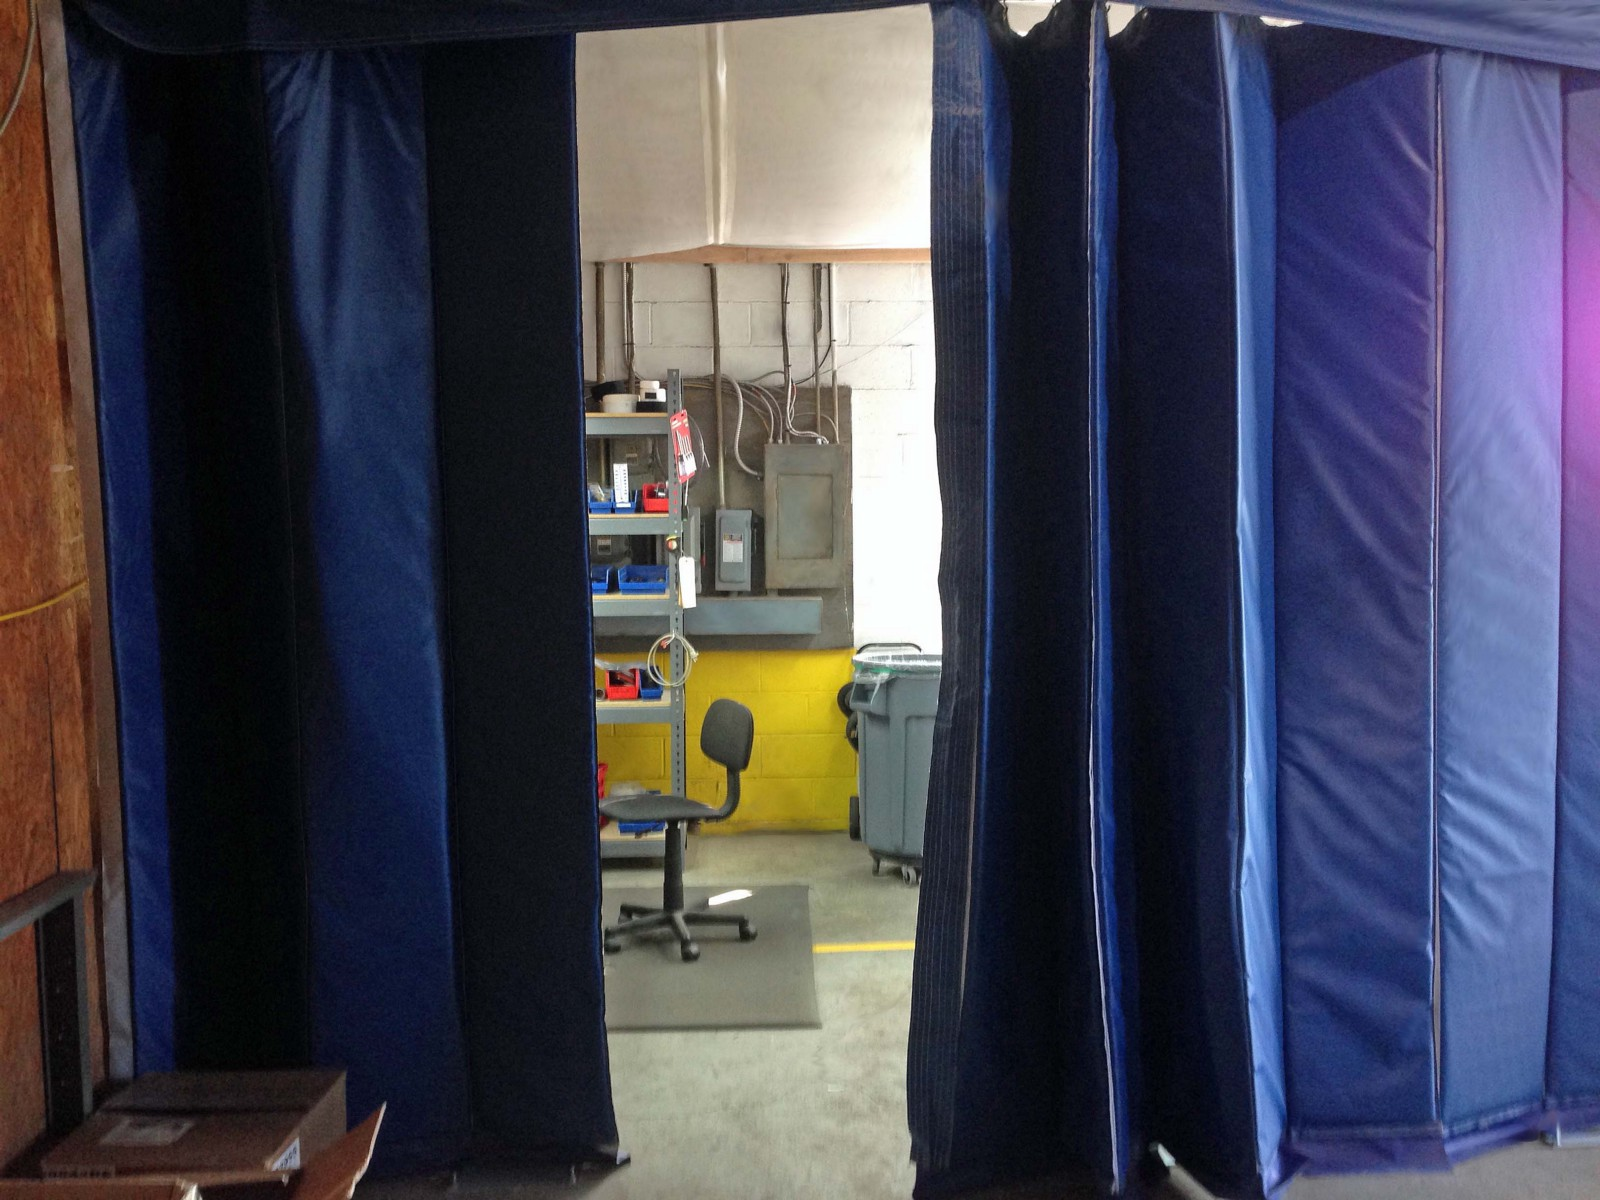 news booths welding fabricated applications training management improved lincoln newsroom production introduces for curtain htm workspace and releases electric in weldingbooth